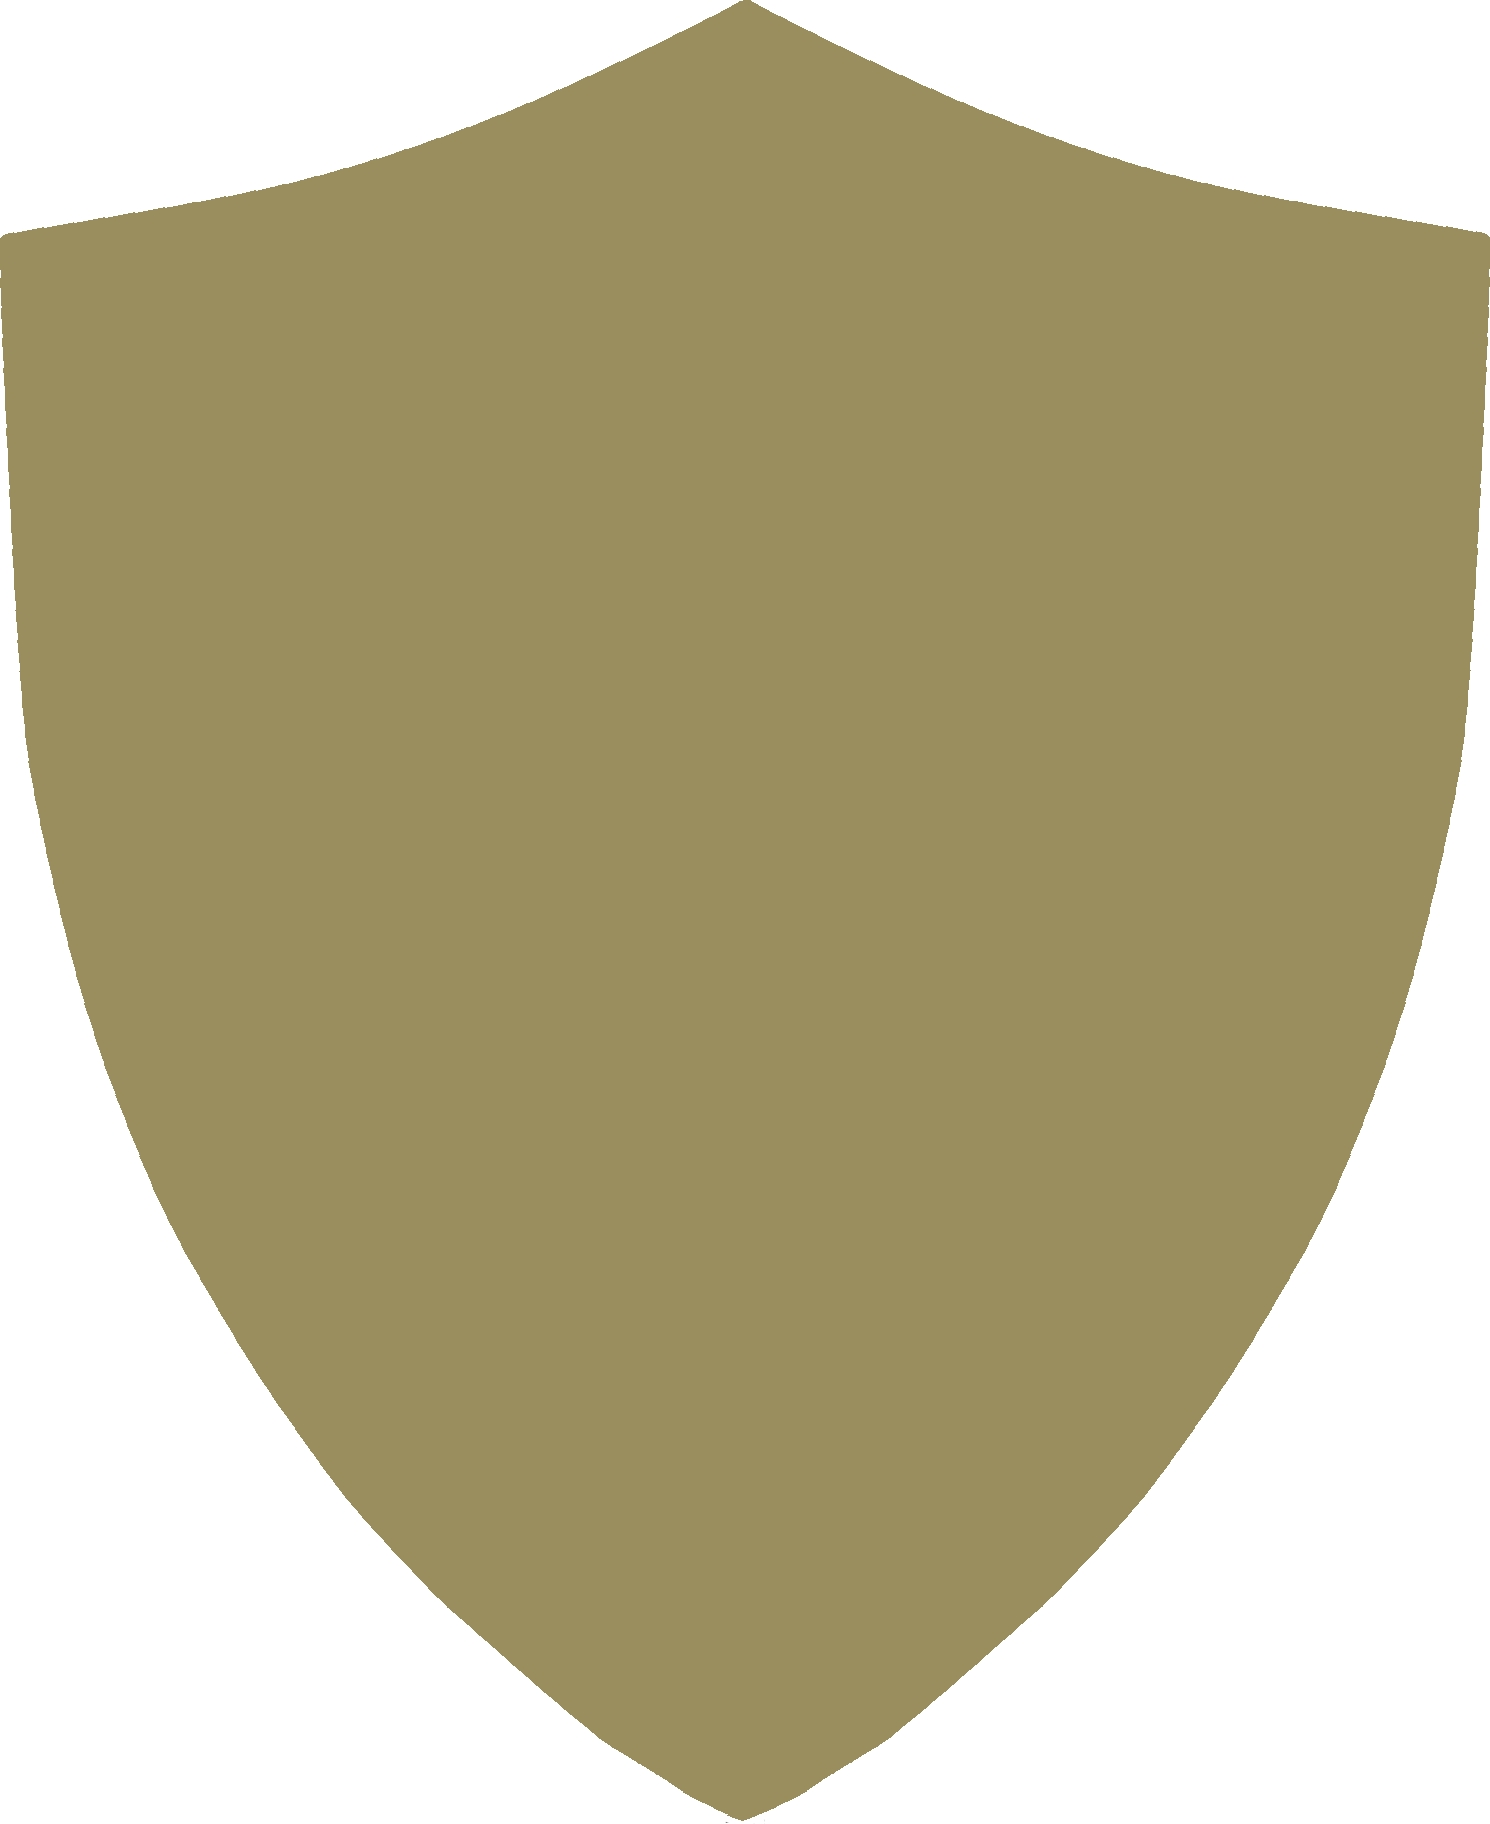 Shield Background Mirror Gold Free Images At Clker Com